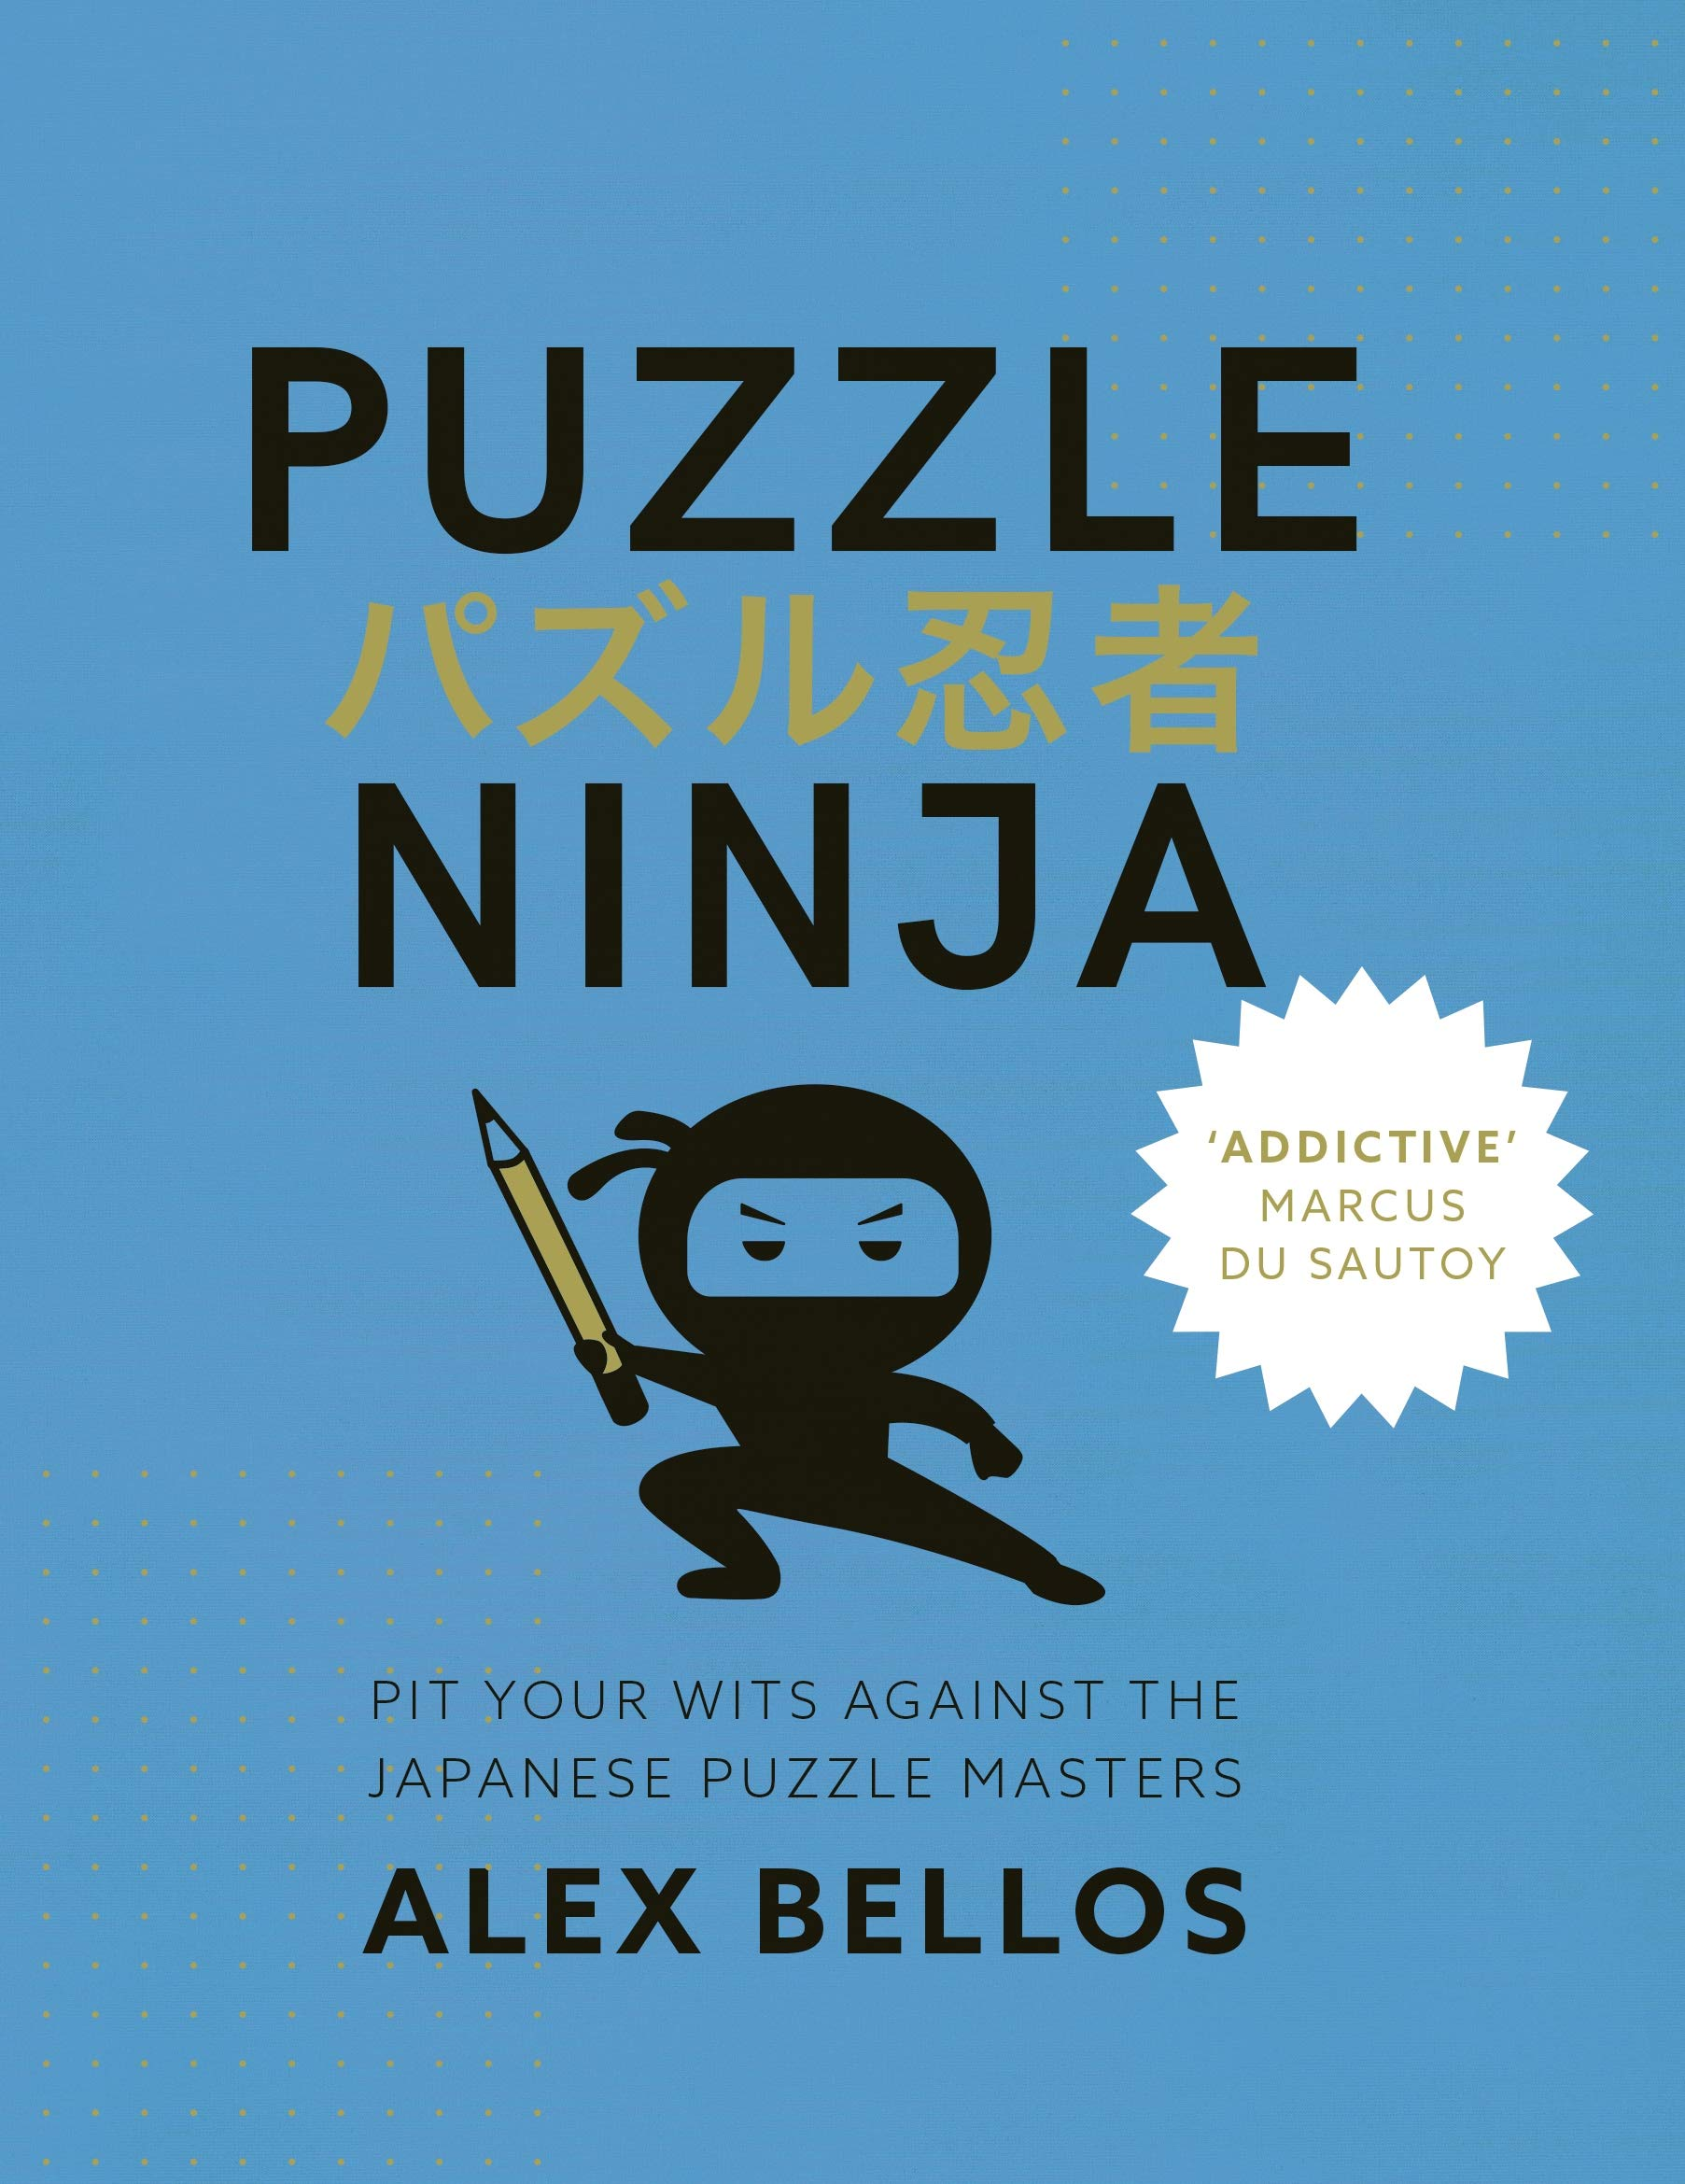 Bellos, A: Puzzle Ninja: Amazon.es: Alex Bellos: Libros en ...